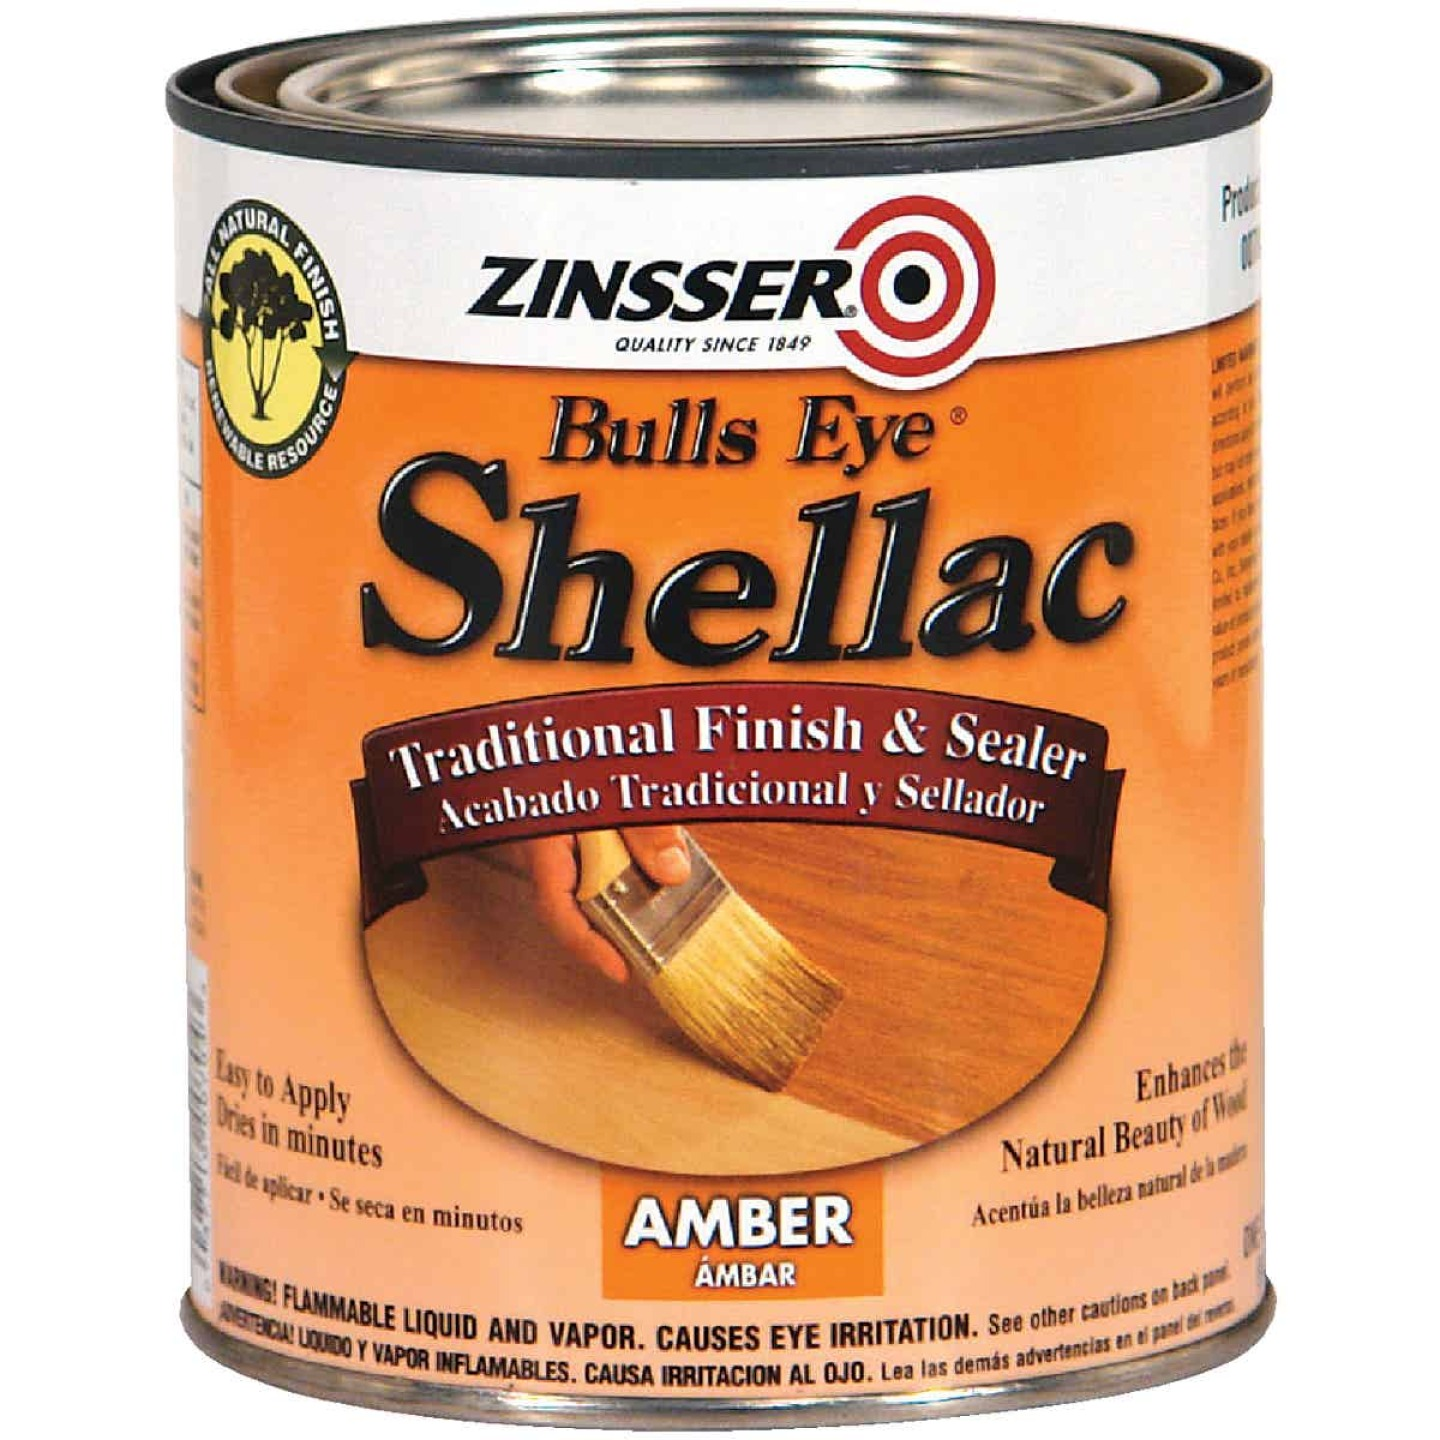 Zinsser Bulls Eye Amber Shellac, Quart Image 1